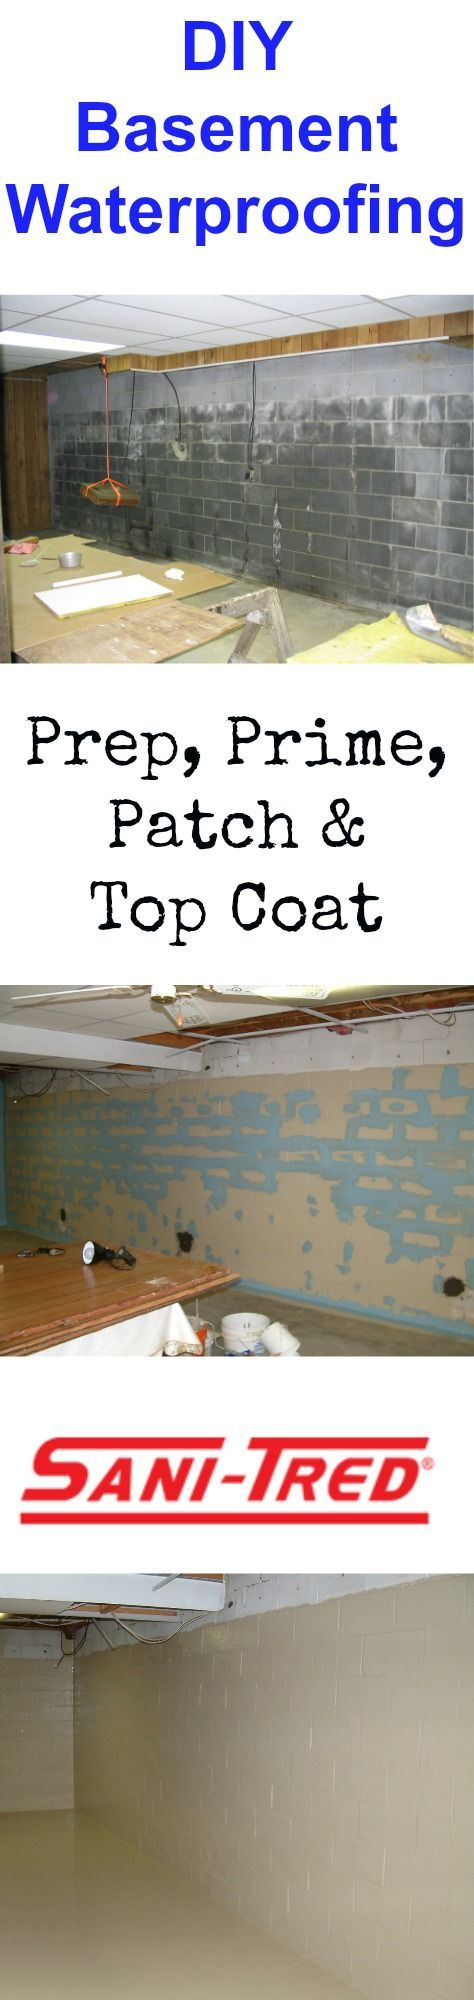 do it yourself basement waterproofing that actually works proven to